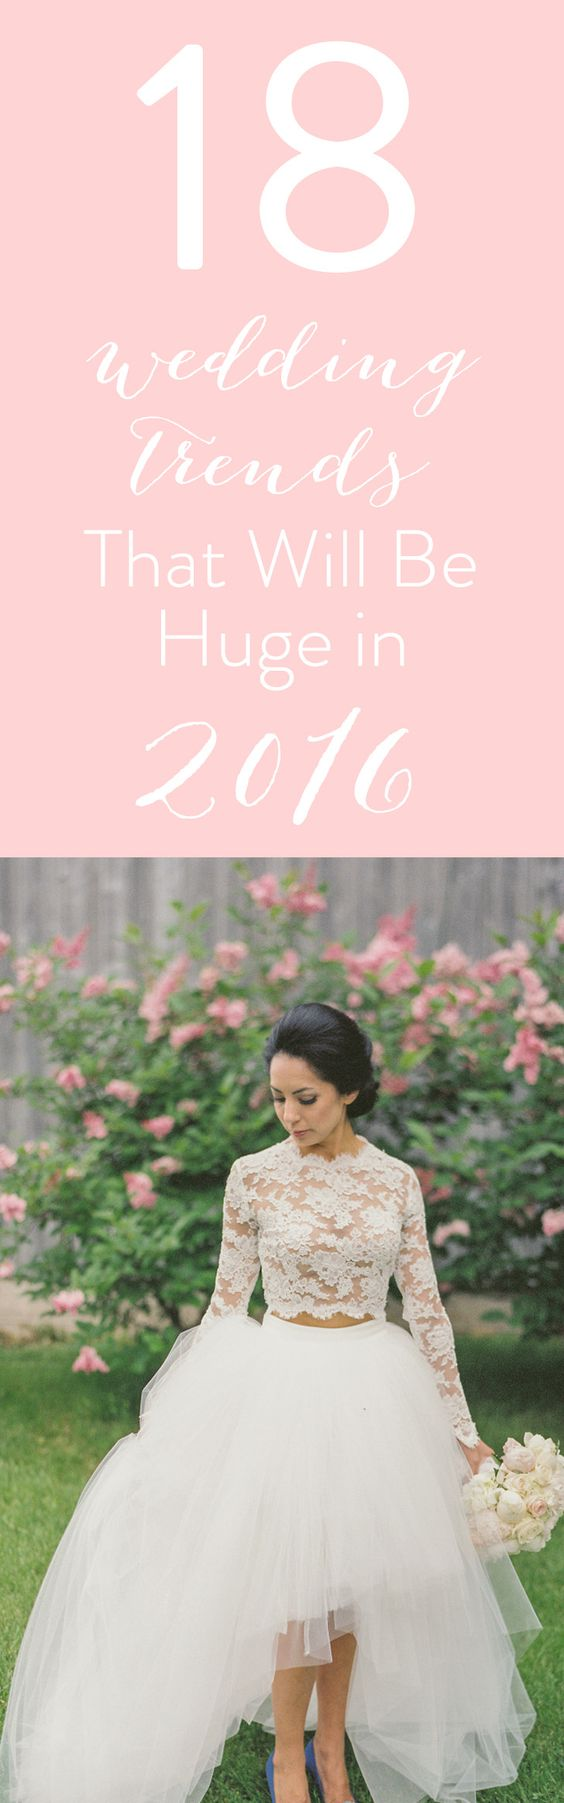 Wedding Trends to Watch for in 2016